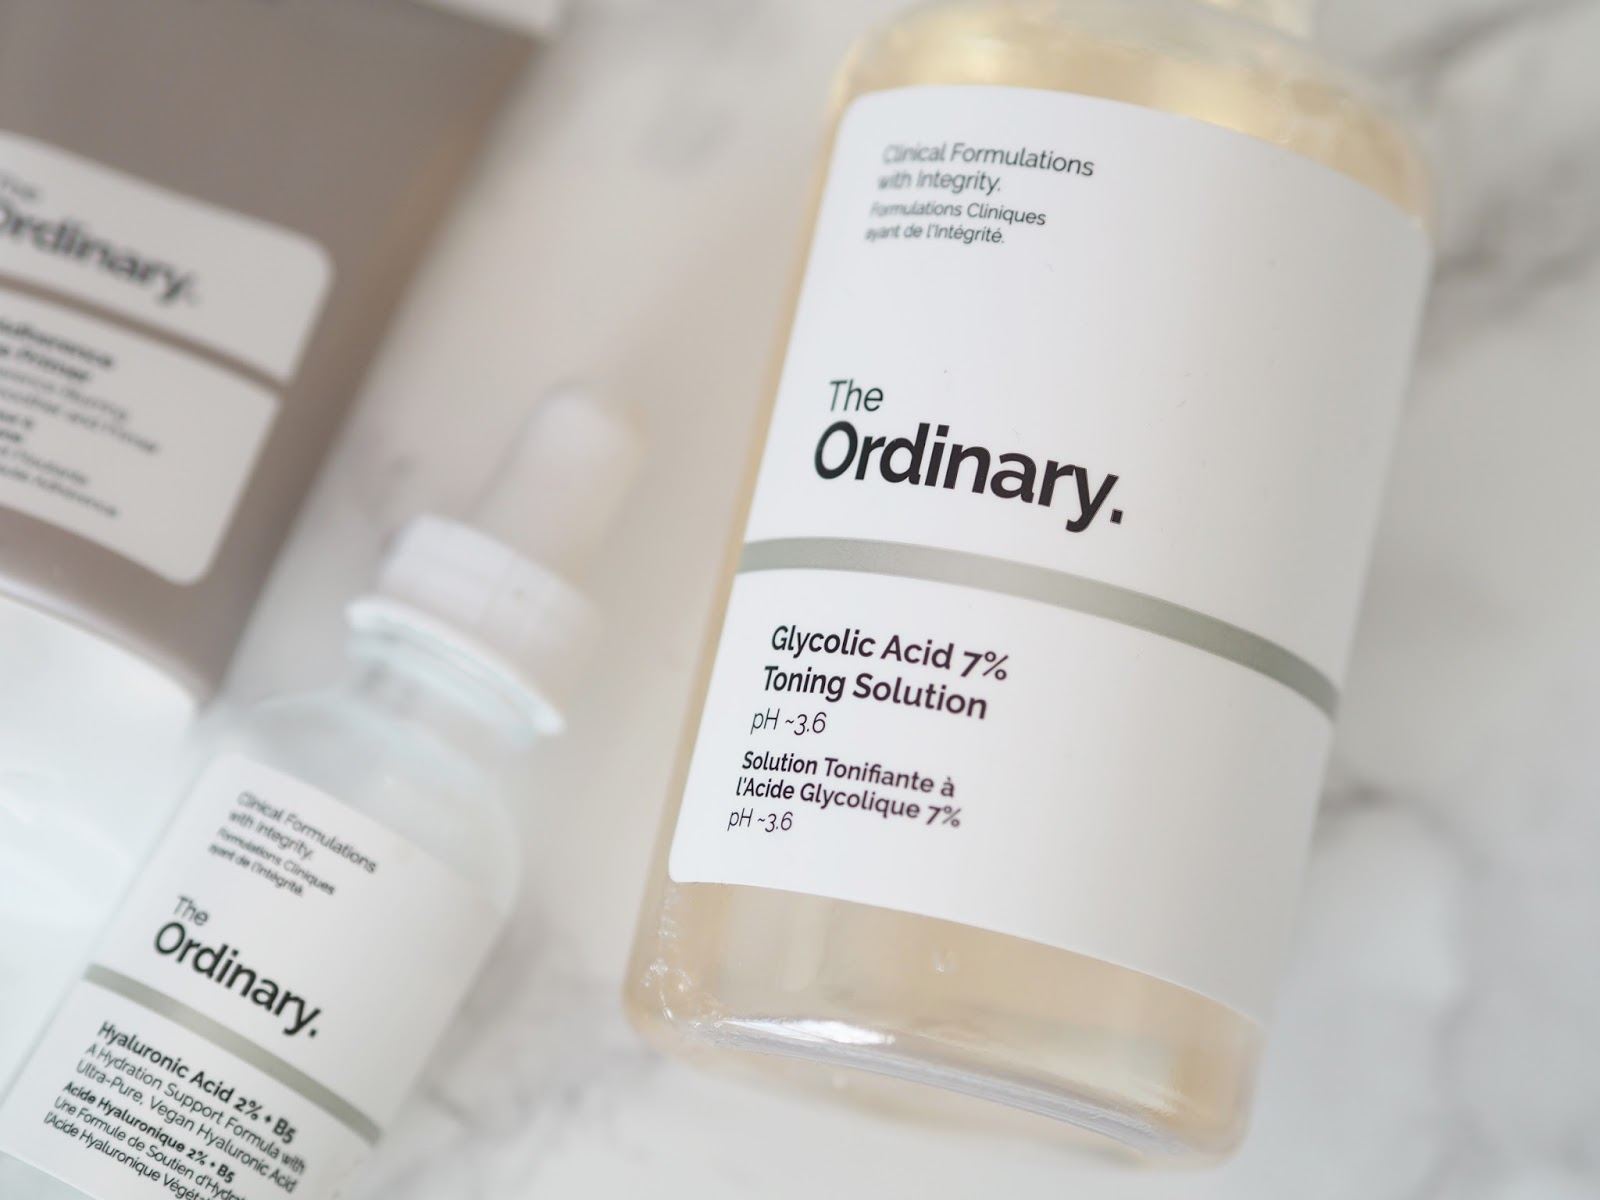 The Ordinary \ Skincare that everyone is still talking about \ Deciem \ The abnormal beauty company \ beauty \ skin \  cosmeceuticals \ Priceless Life of Mine \ Over 40 lifestyle blog \ Leicester